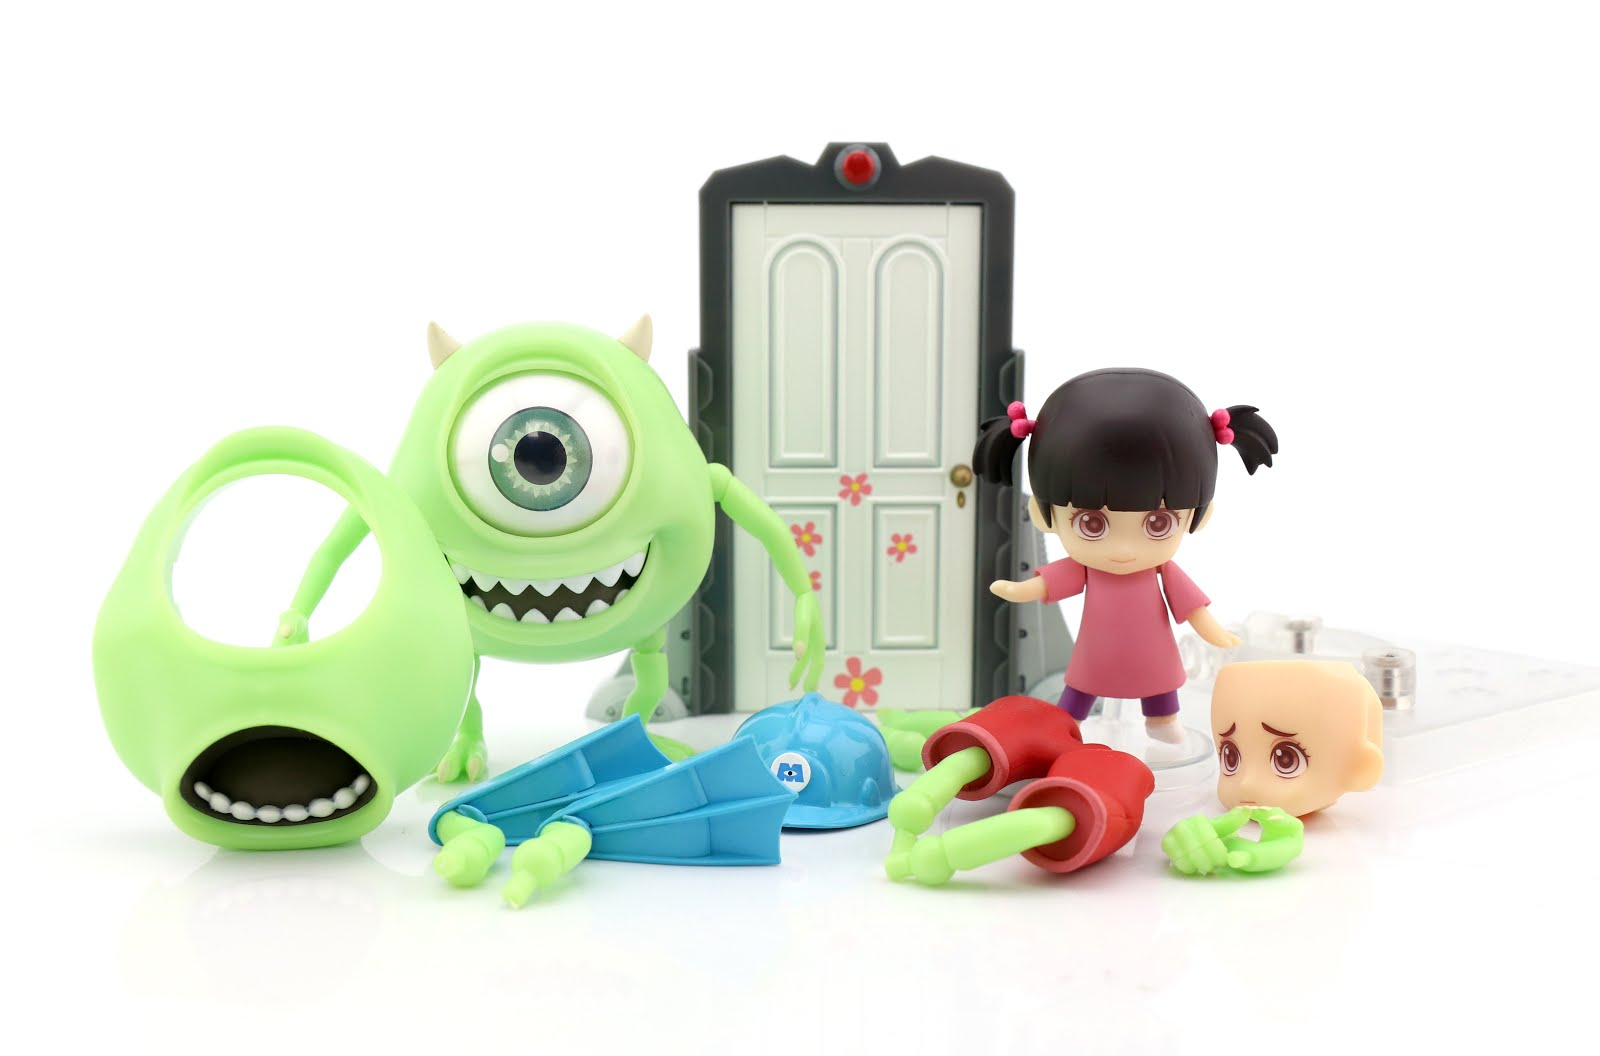 Monsters Inc Good Smile Company Mike Wazowski & Boo Nendoroid Set (Deluxe) Review